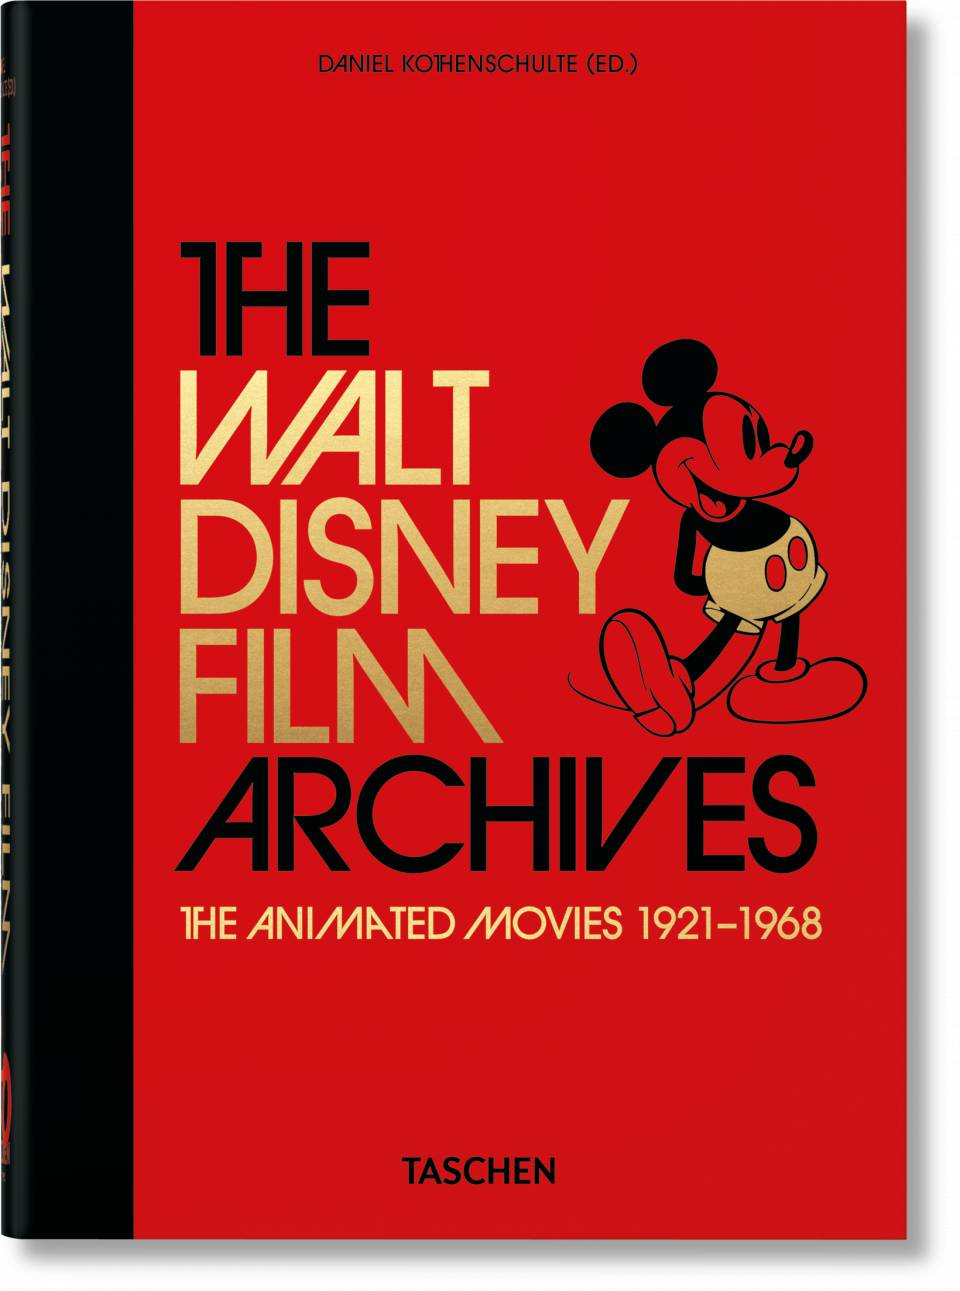 The Walt Disney Film Archives. The Animated Movies 1921–1968. 40th Anniversary Edition - image 1